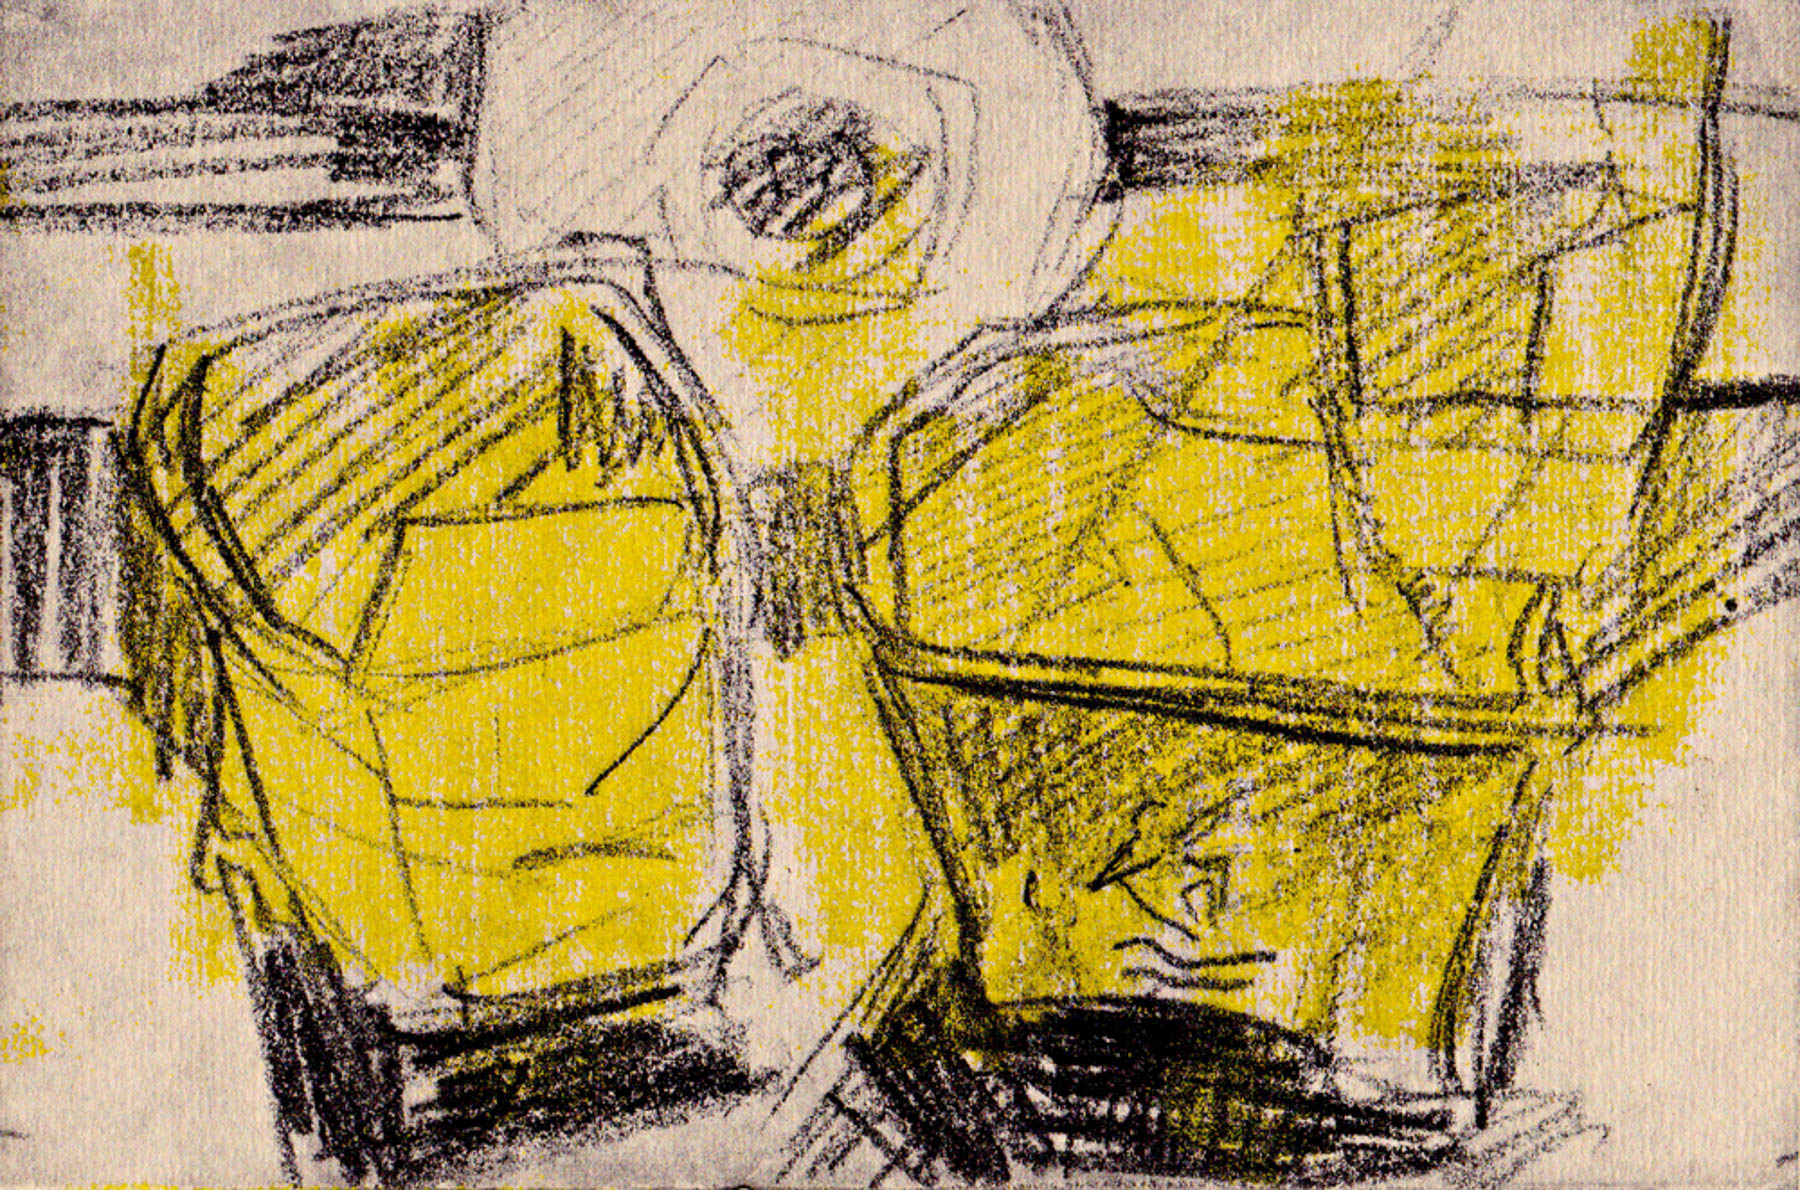 Mop Buckets, Chin Colle, Ink on Paper, 5 x 7 inches